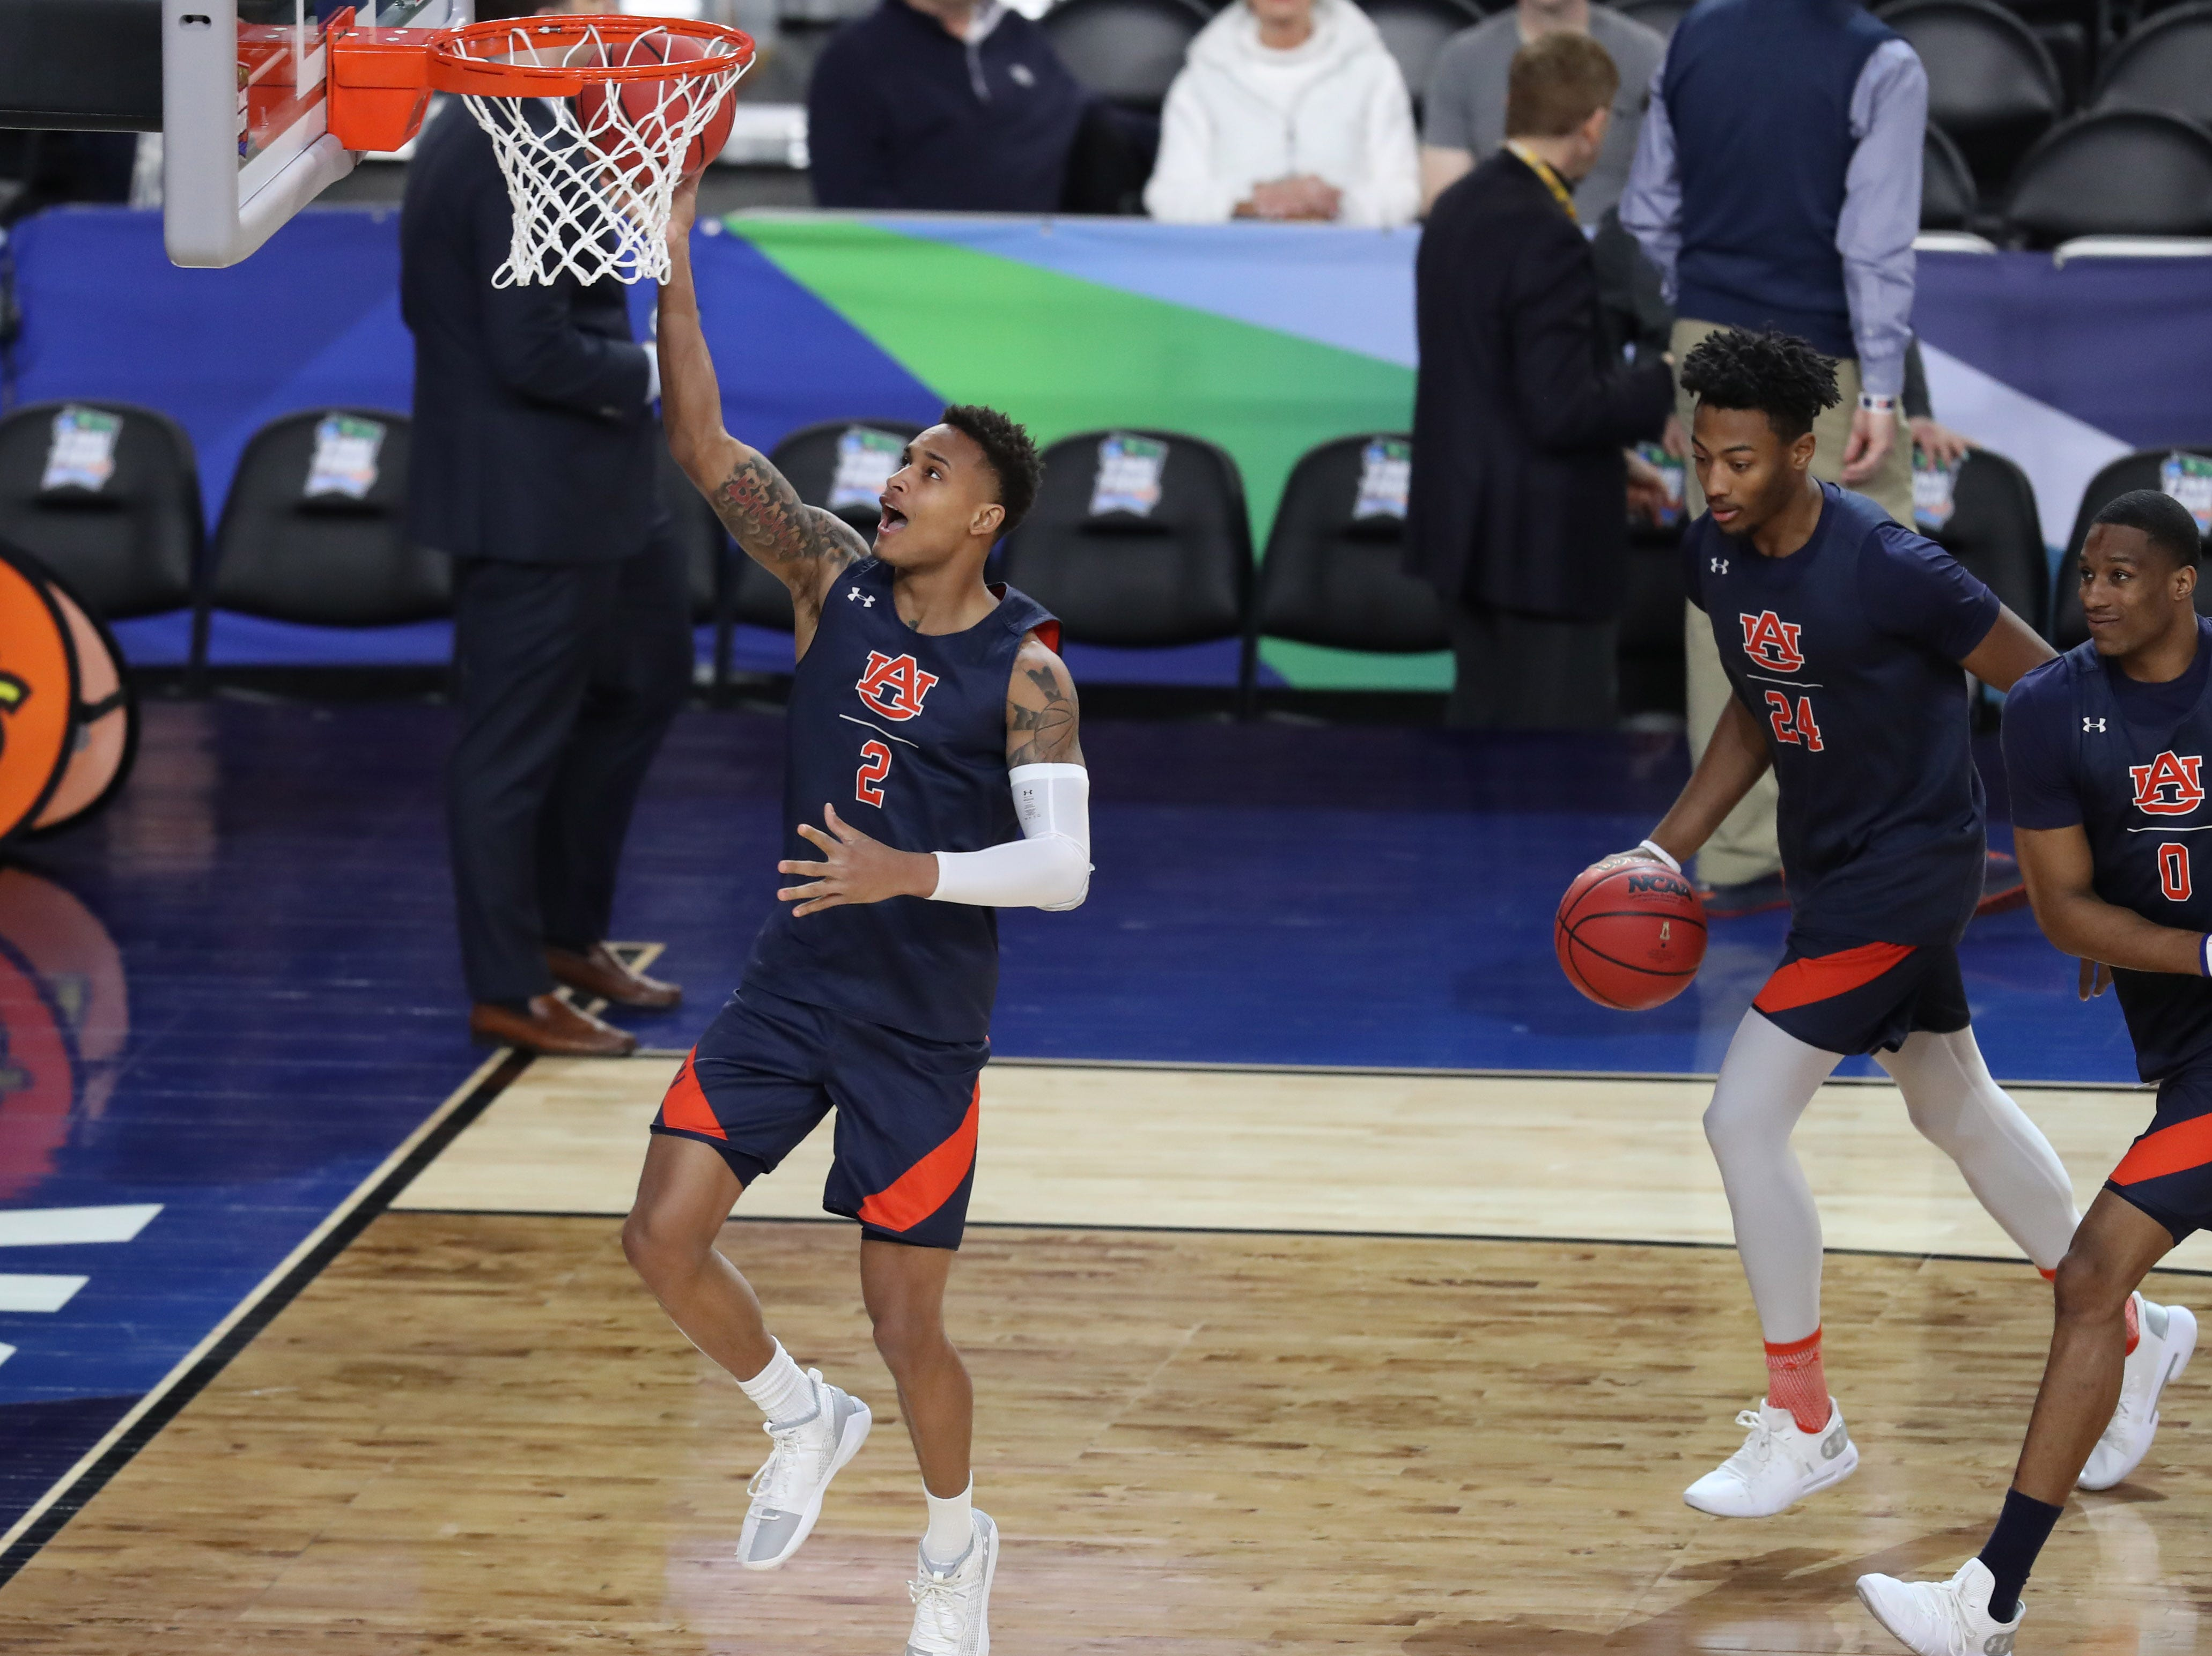 Apr 5, 2019; Minneapolis, MN, USA; Auburn Tigers guard Bryce Brown (2) shoots the ball during practice for the 2019 men's Final Four at US Bank Stadium. Mandatory Credit: Brace Hemmelgarn-USA TODAY Sports